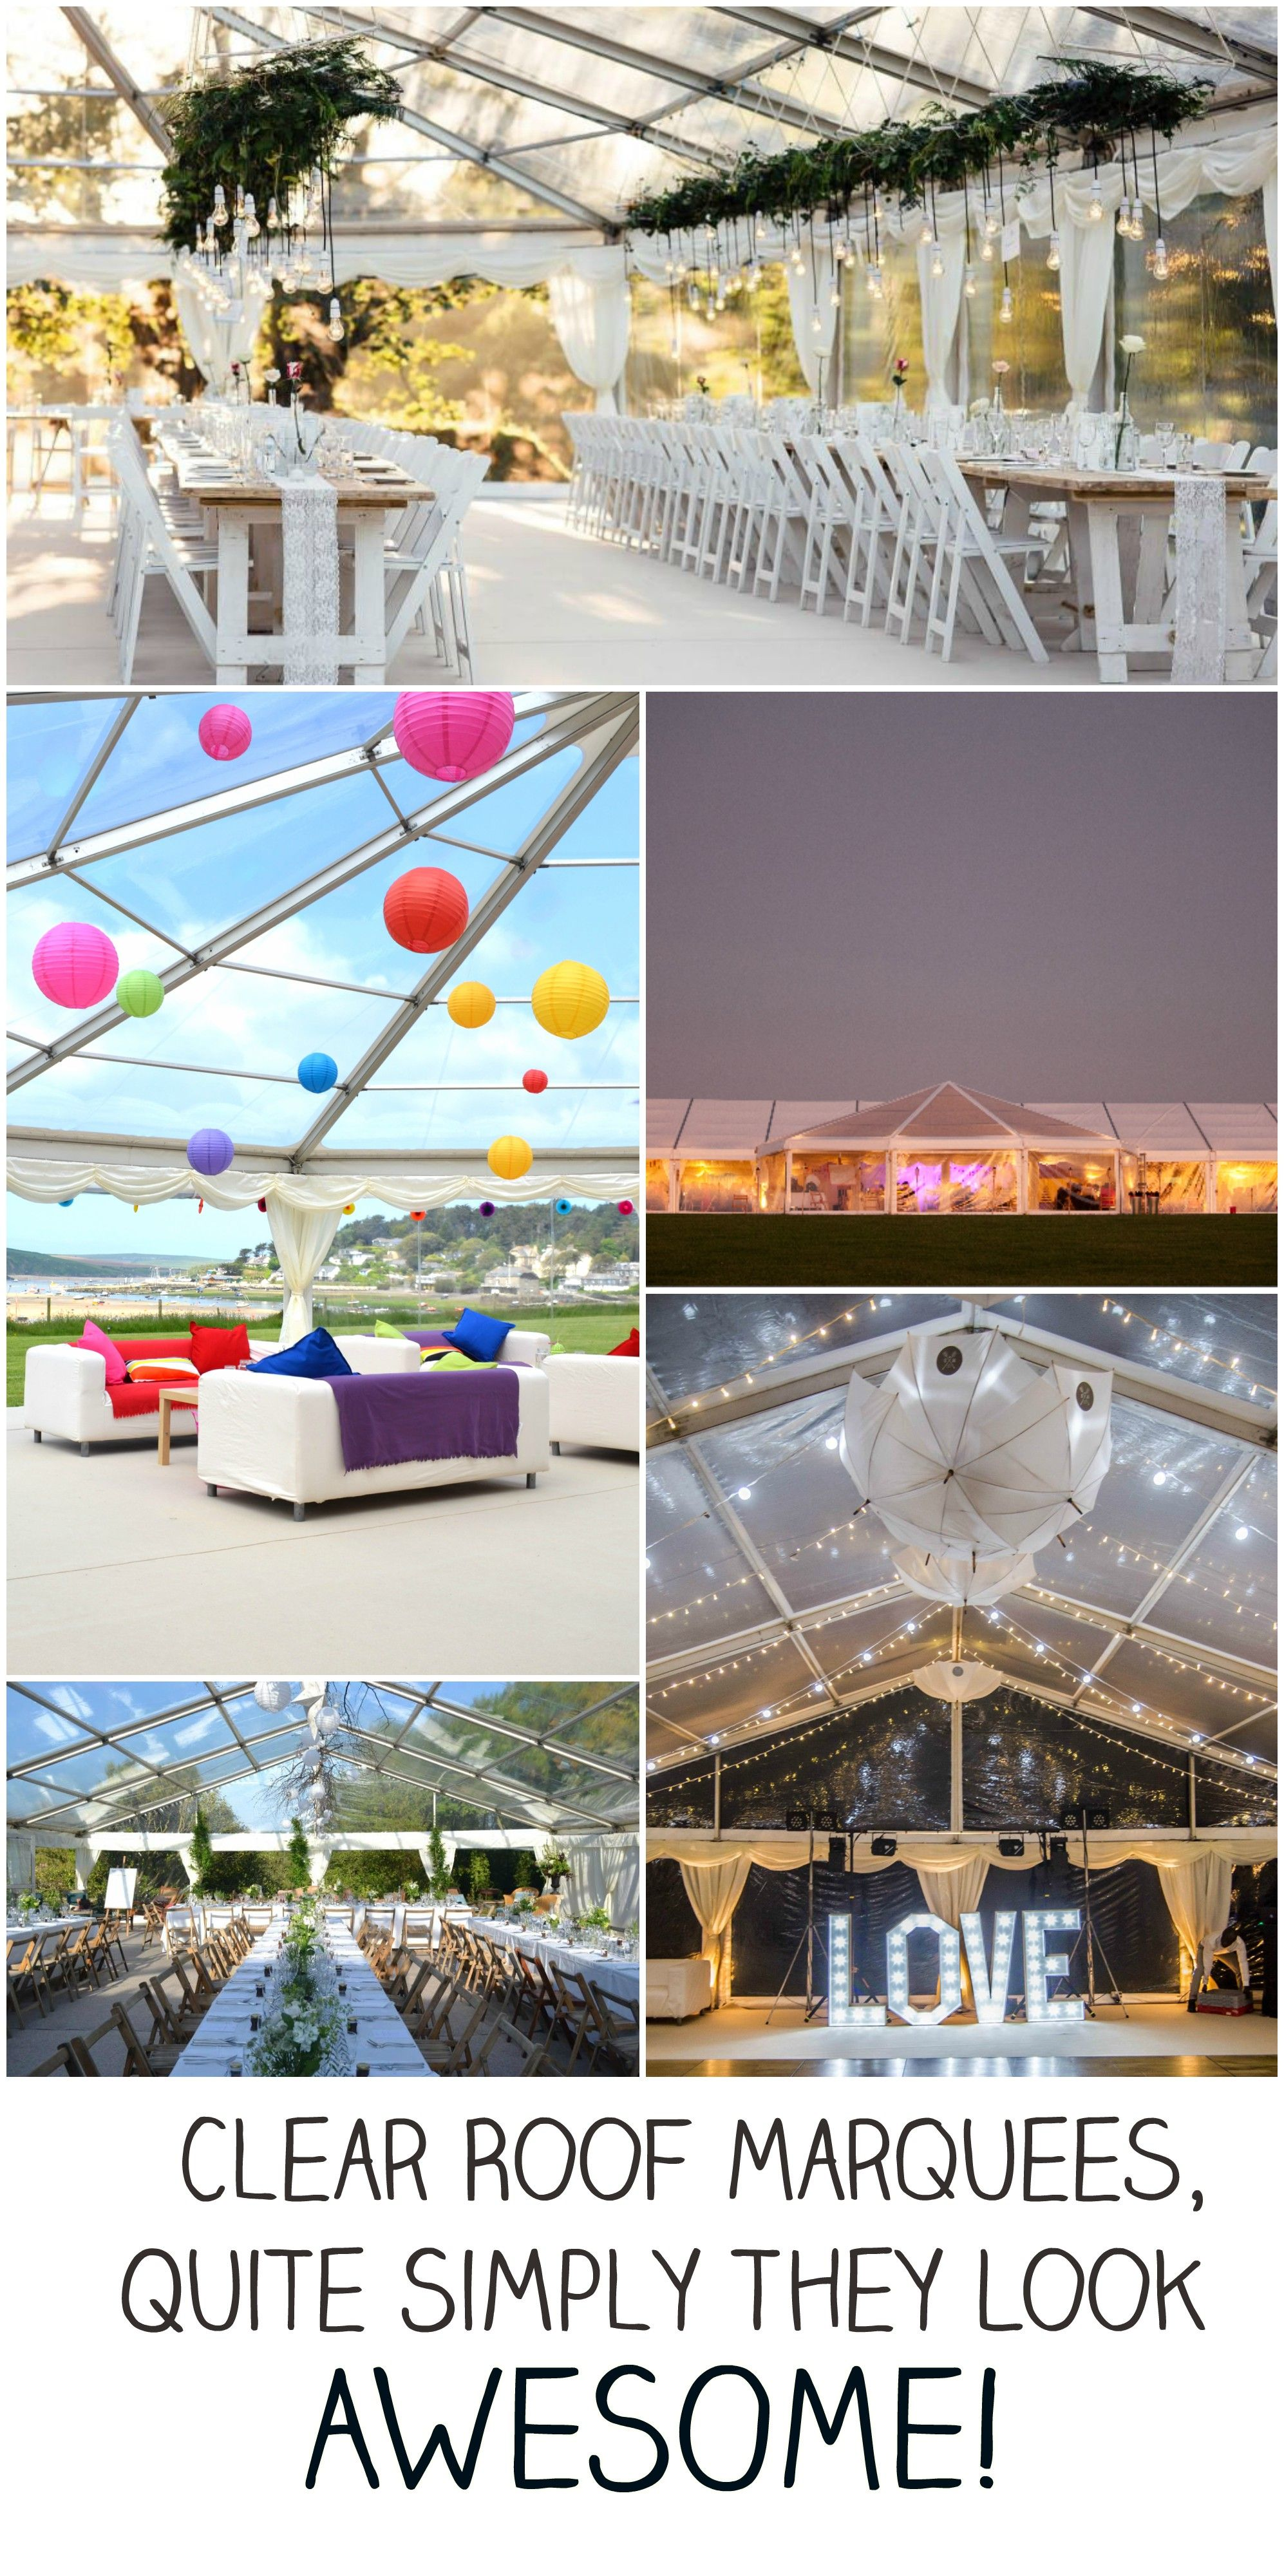 Clear roof marquees u quite simply they look awesome marquee hire